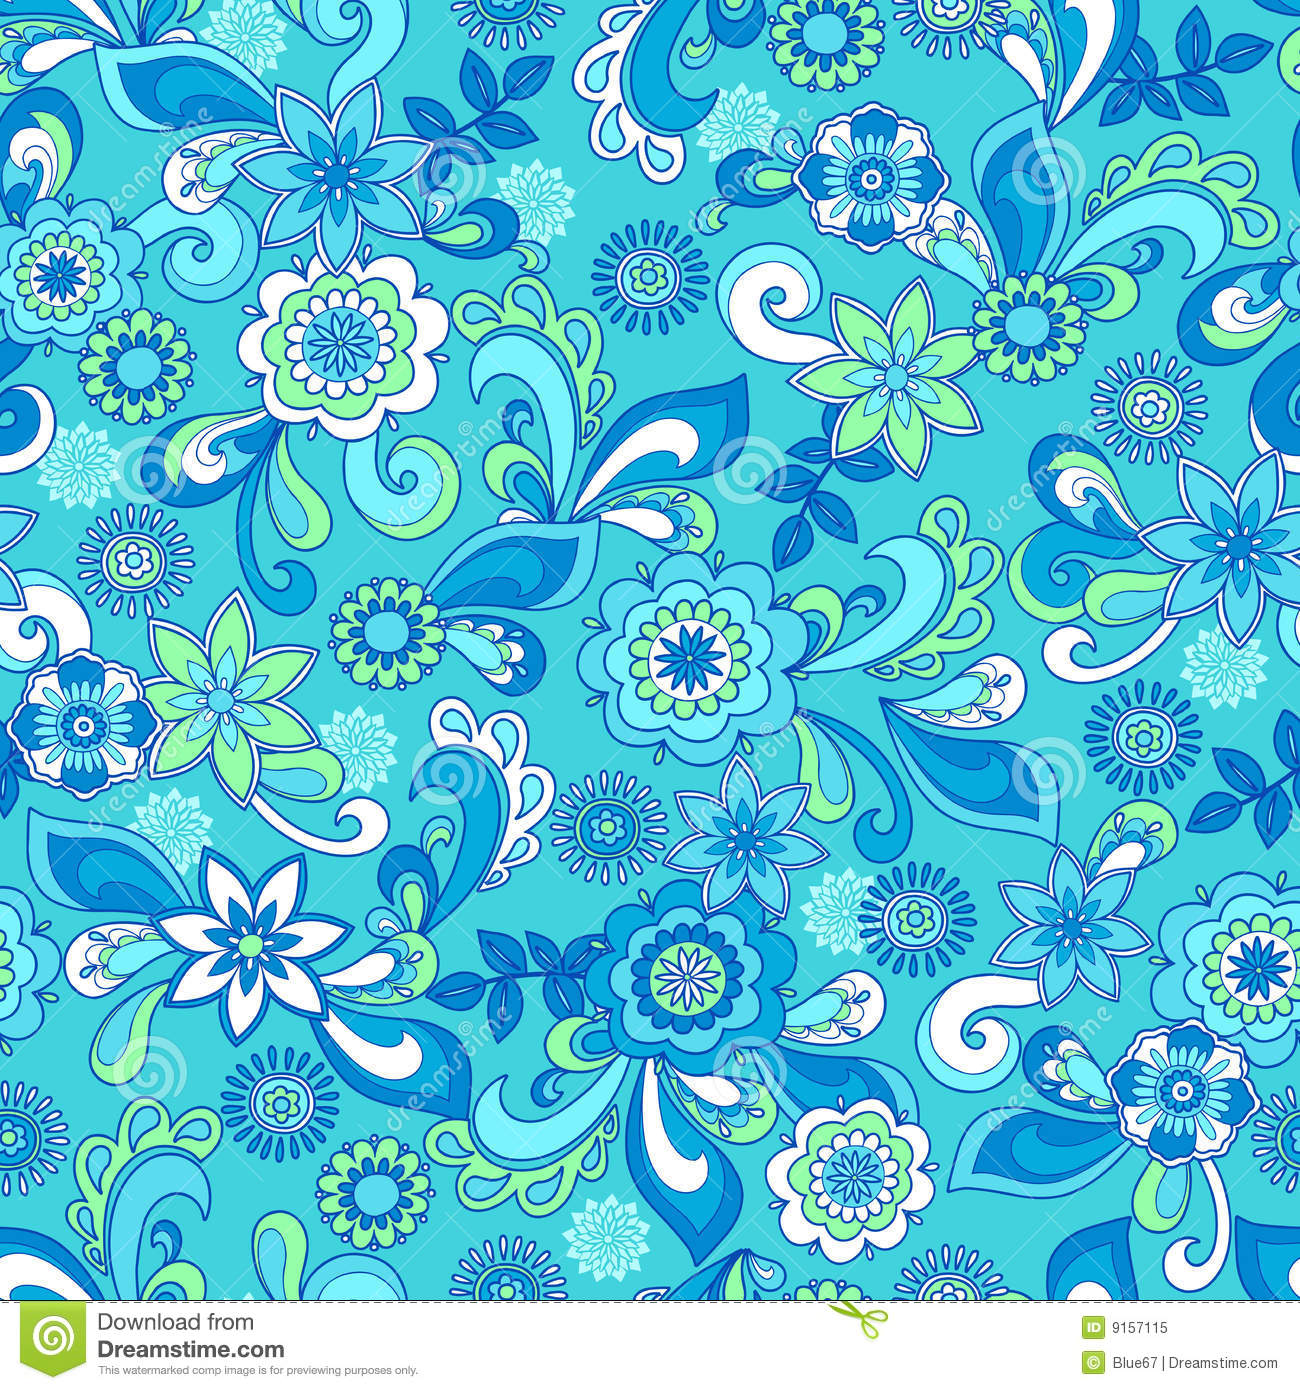 Funky Floral Seamless Repeat Pattern Royalty Free Stock ...